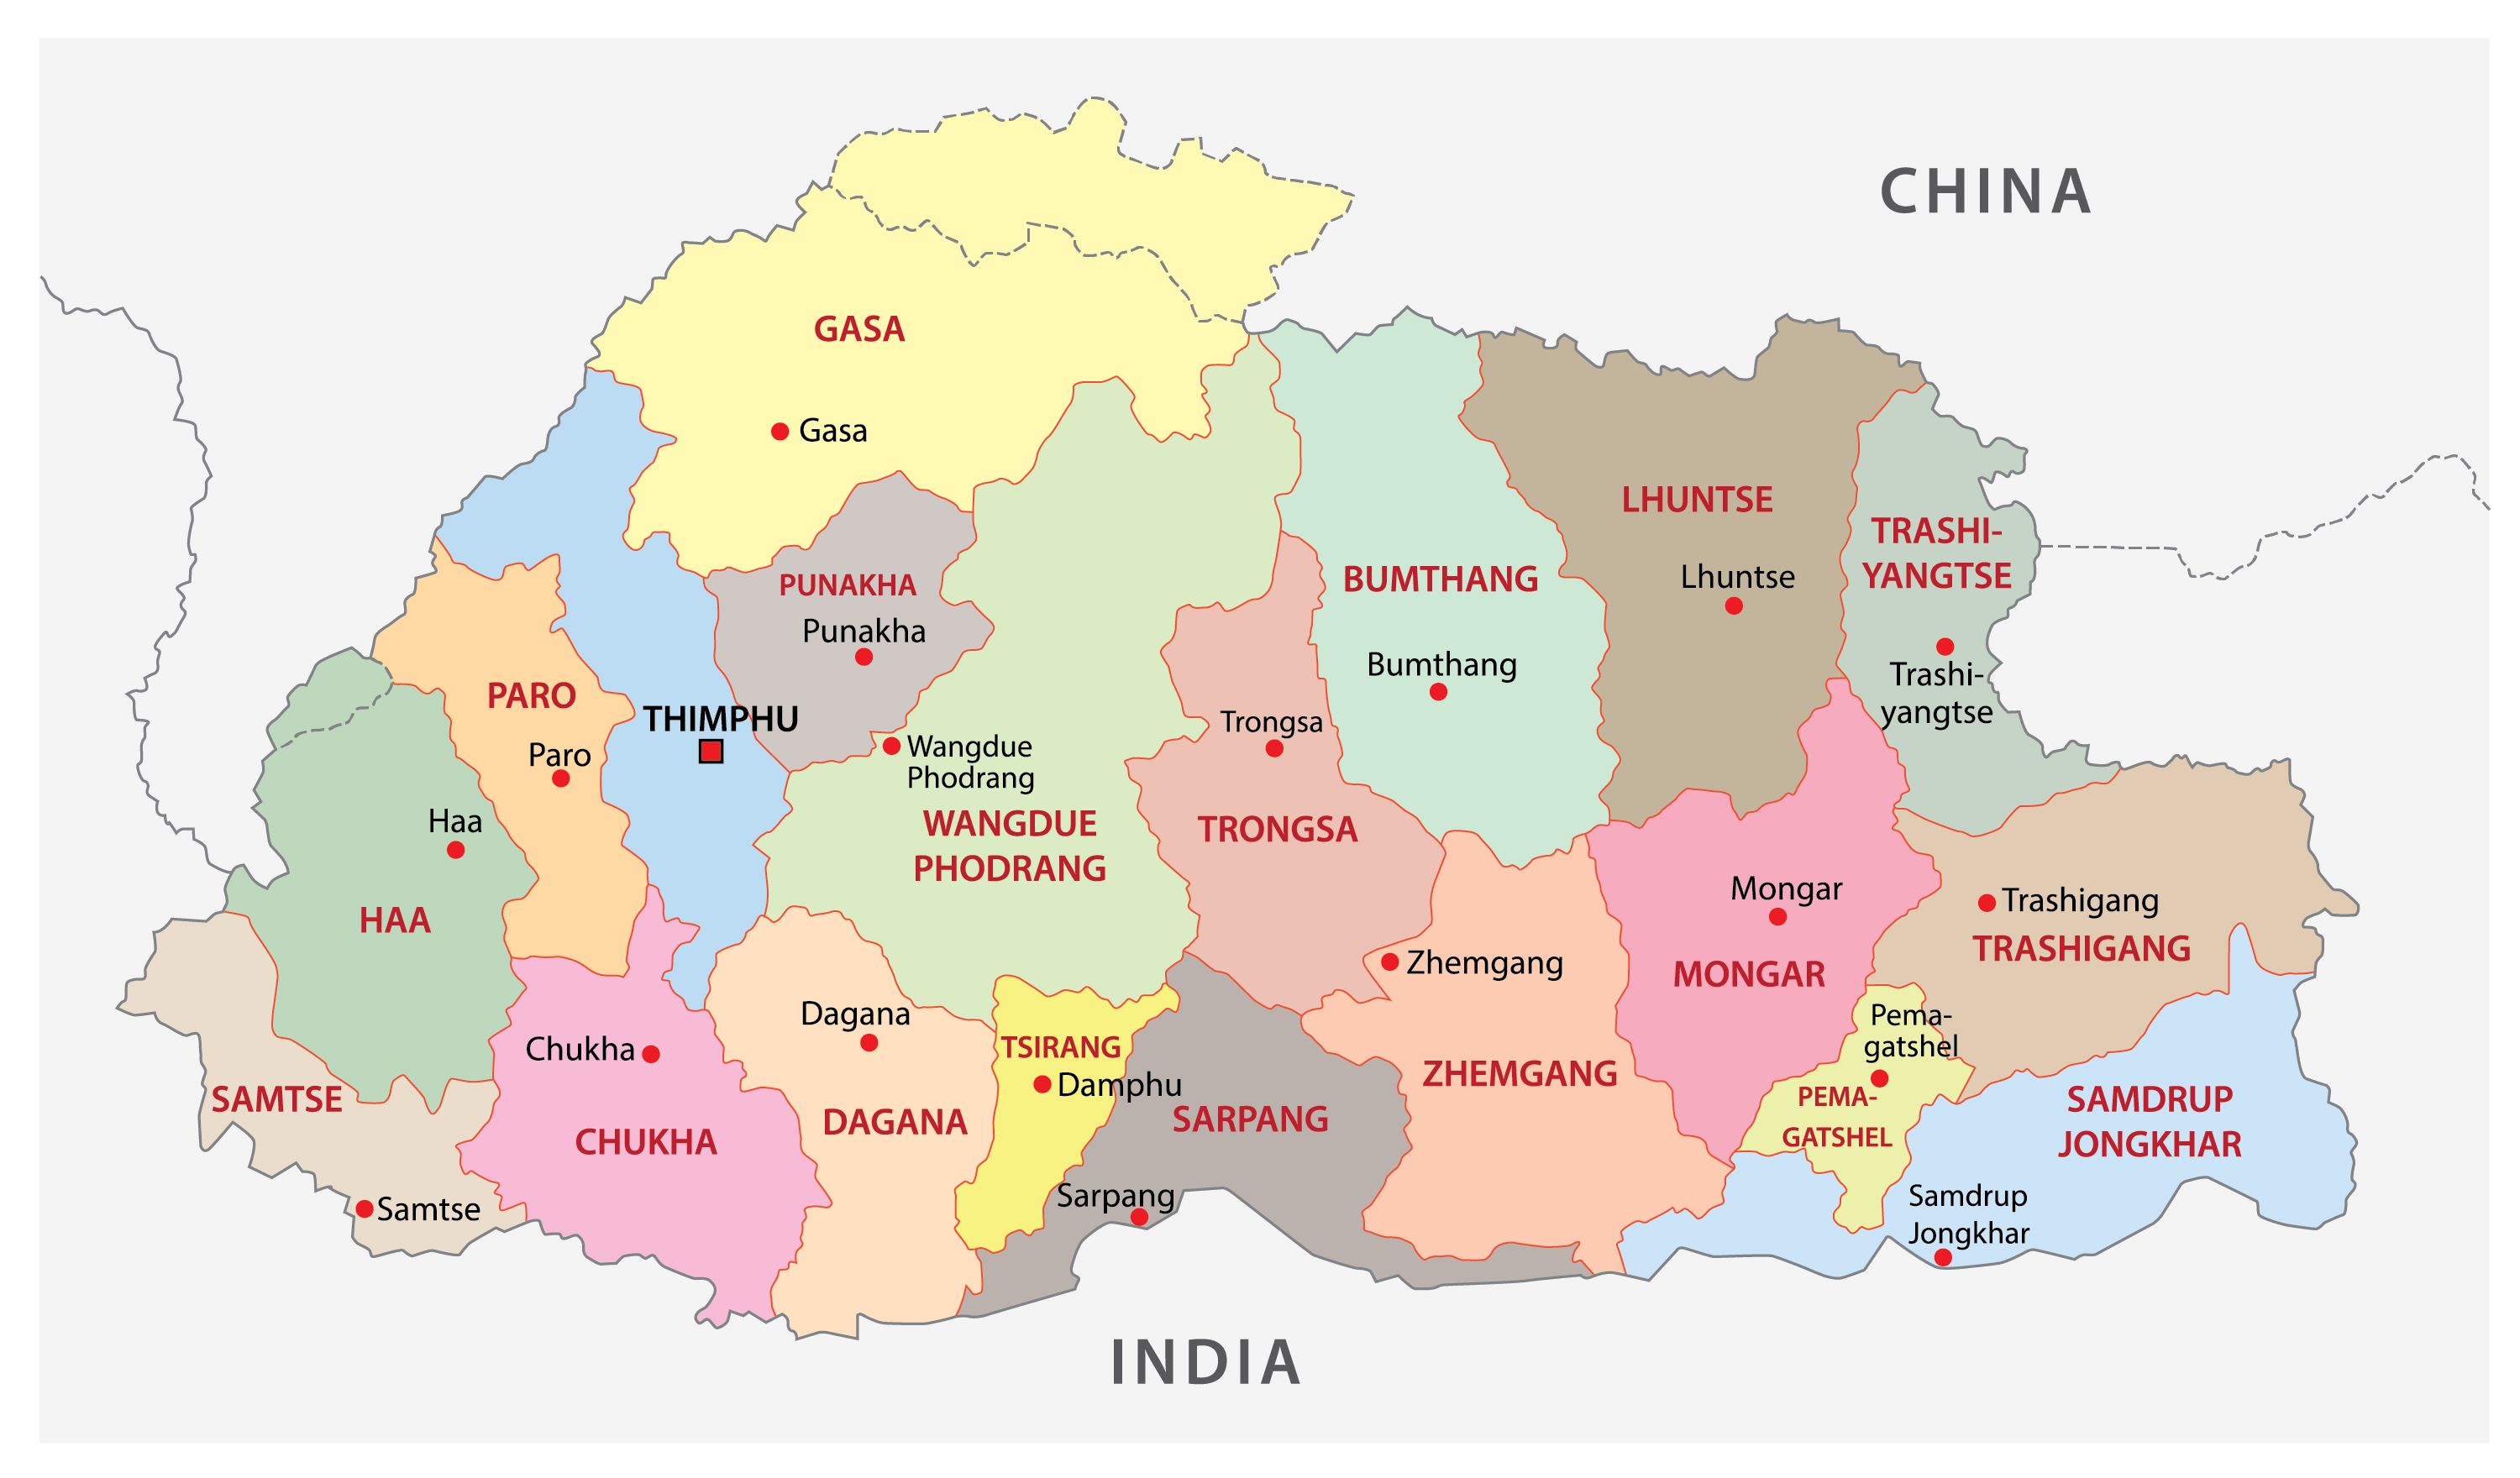 Political Map of Bhutan showing the 20 districts of the country, their capitals, and the national capital of Thimpu.